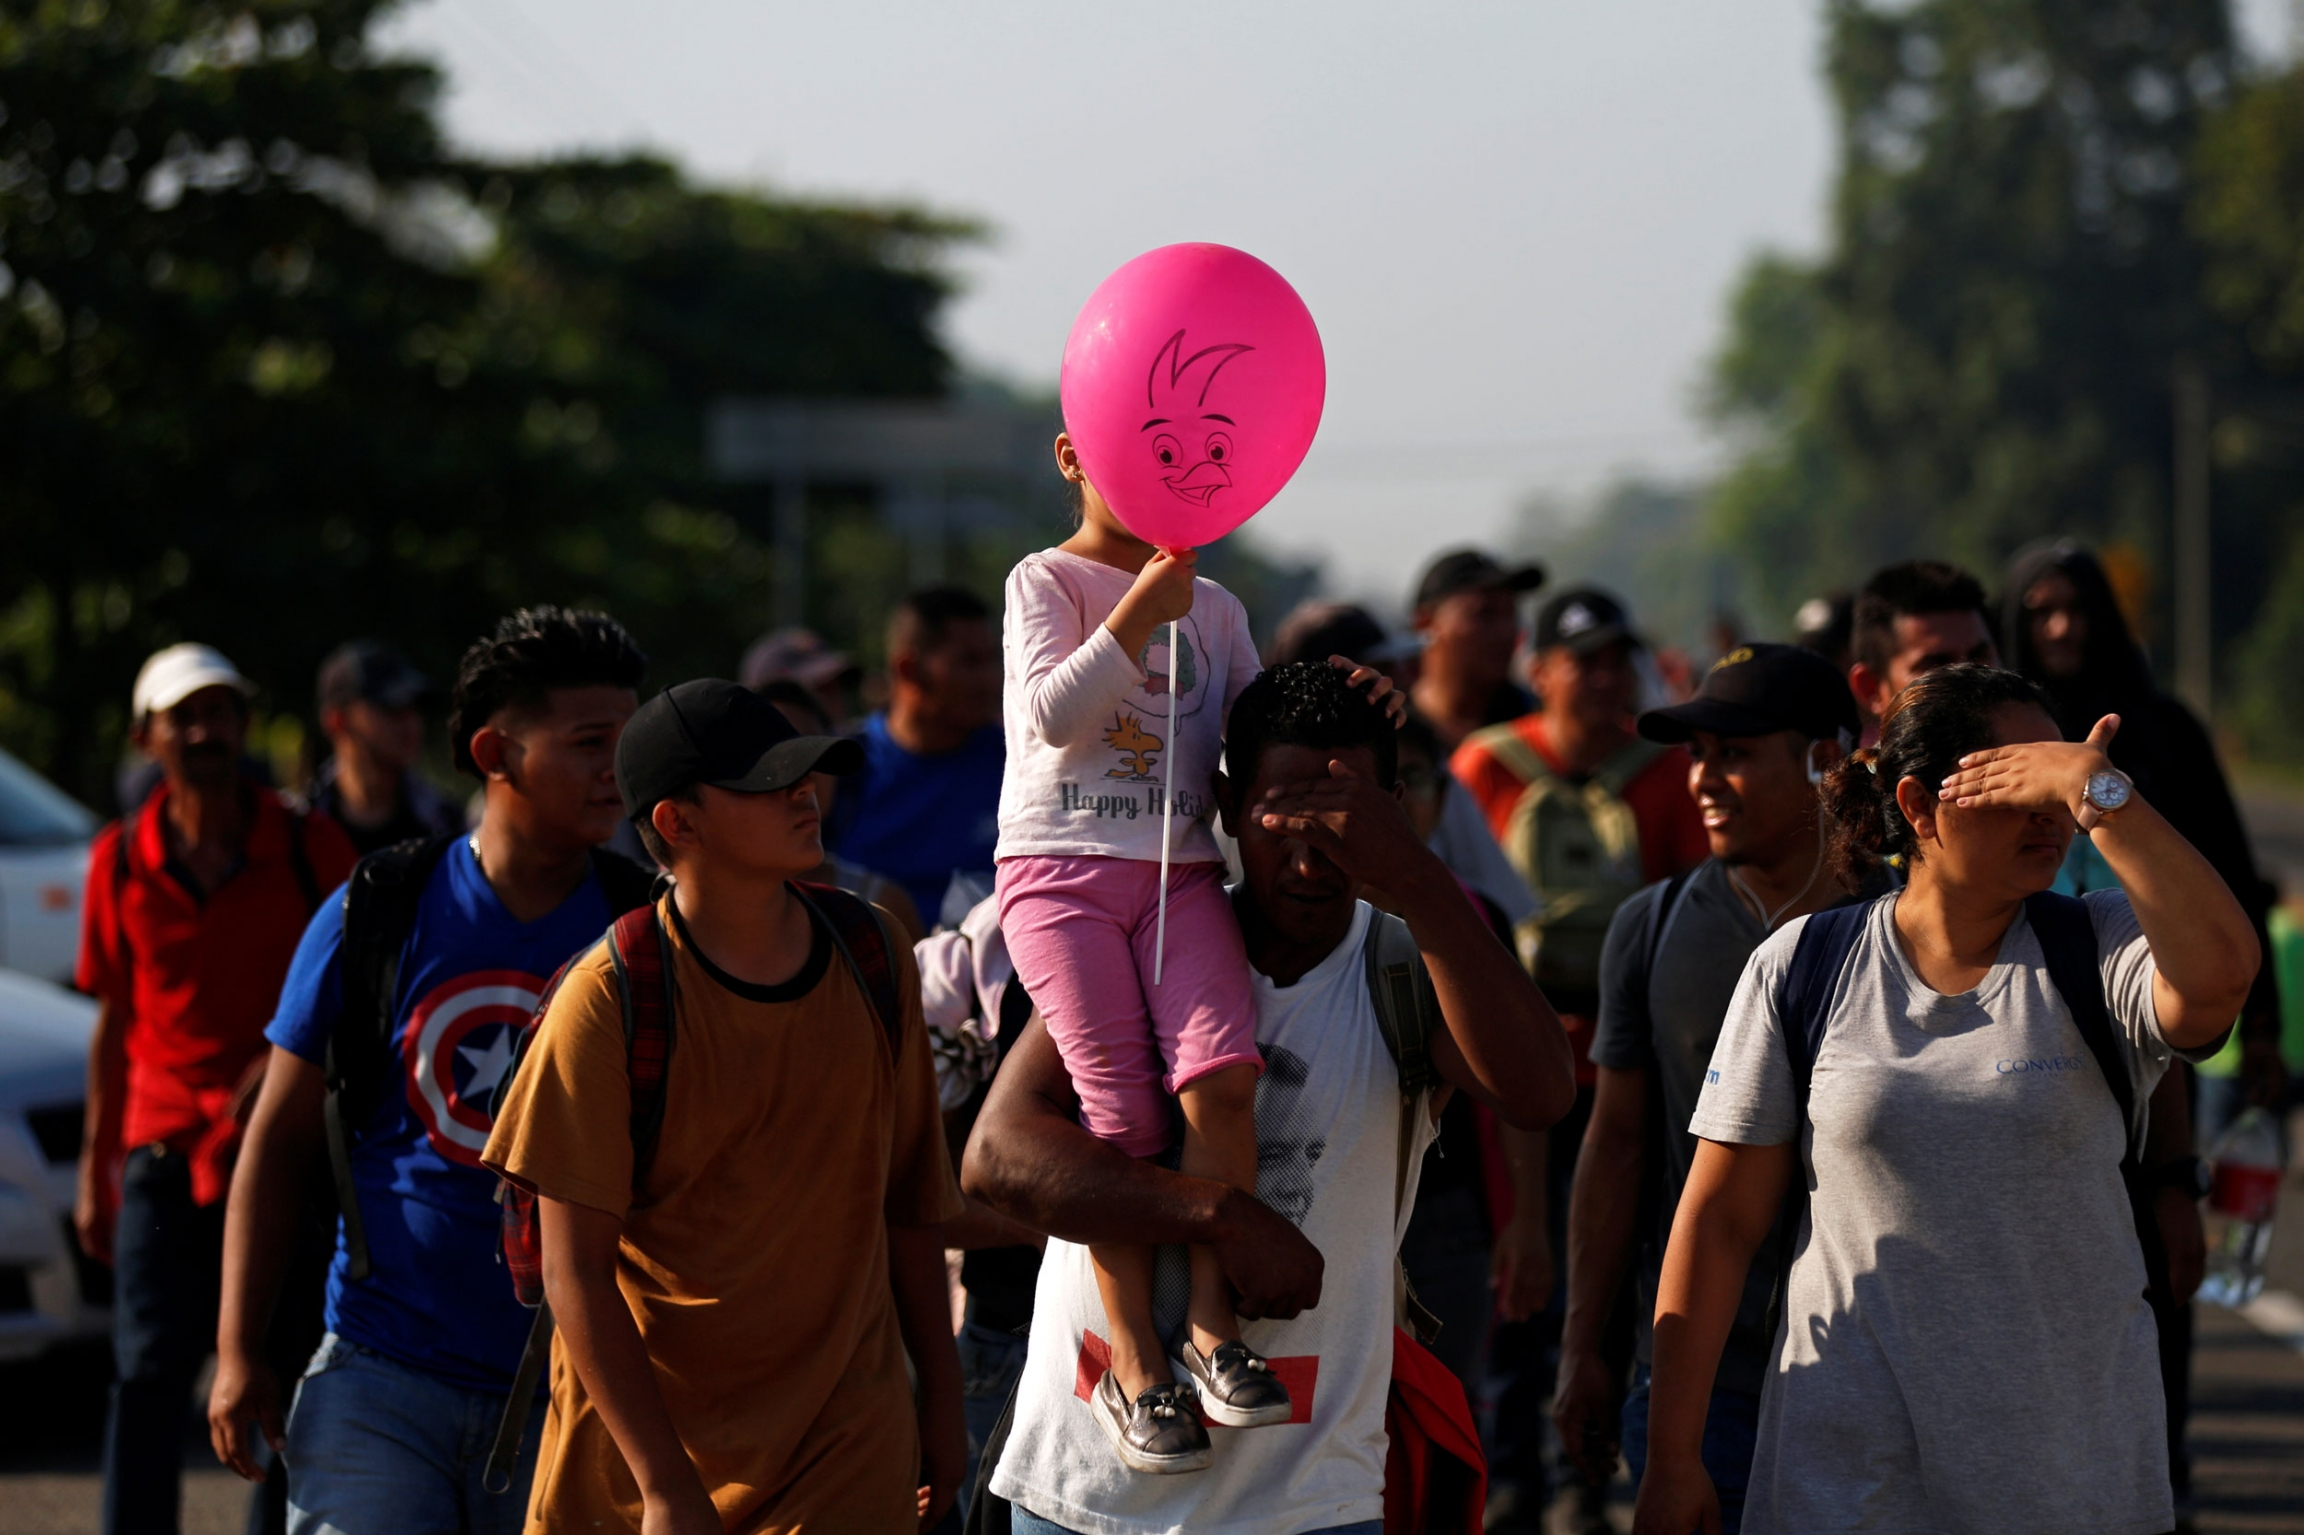 A large group of people are shown in the street walking and one person is carrying a young girl on their shoulder who has a pink balloon.